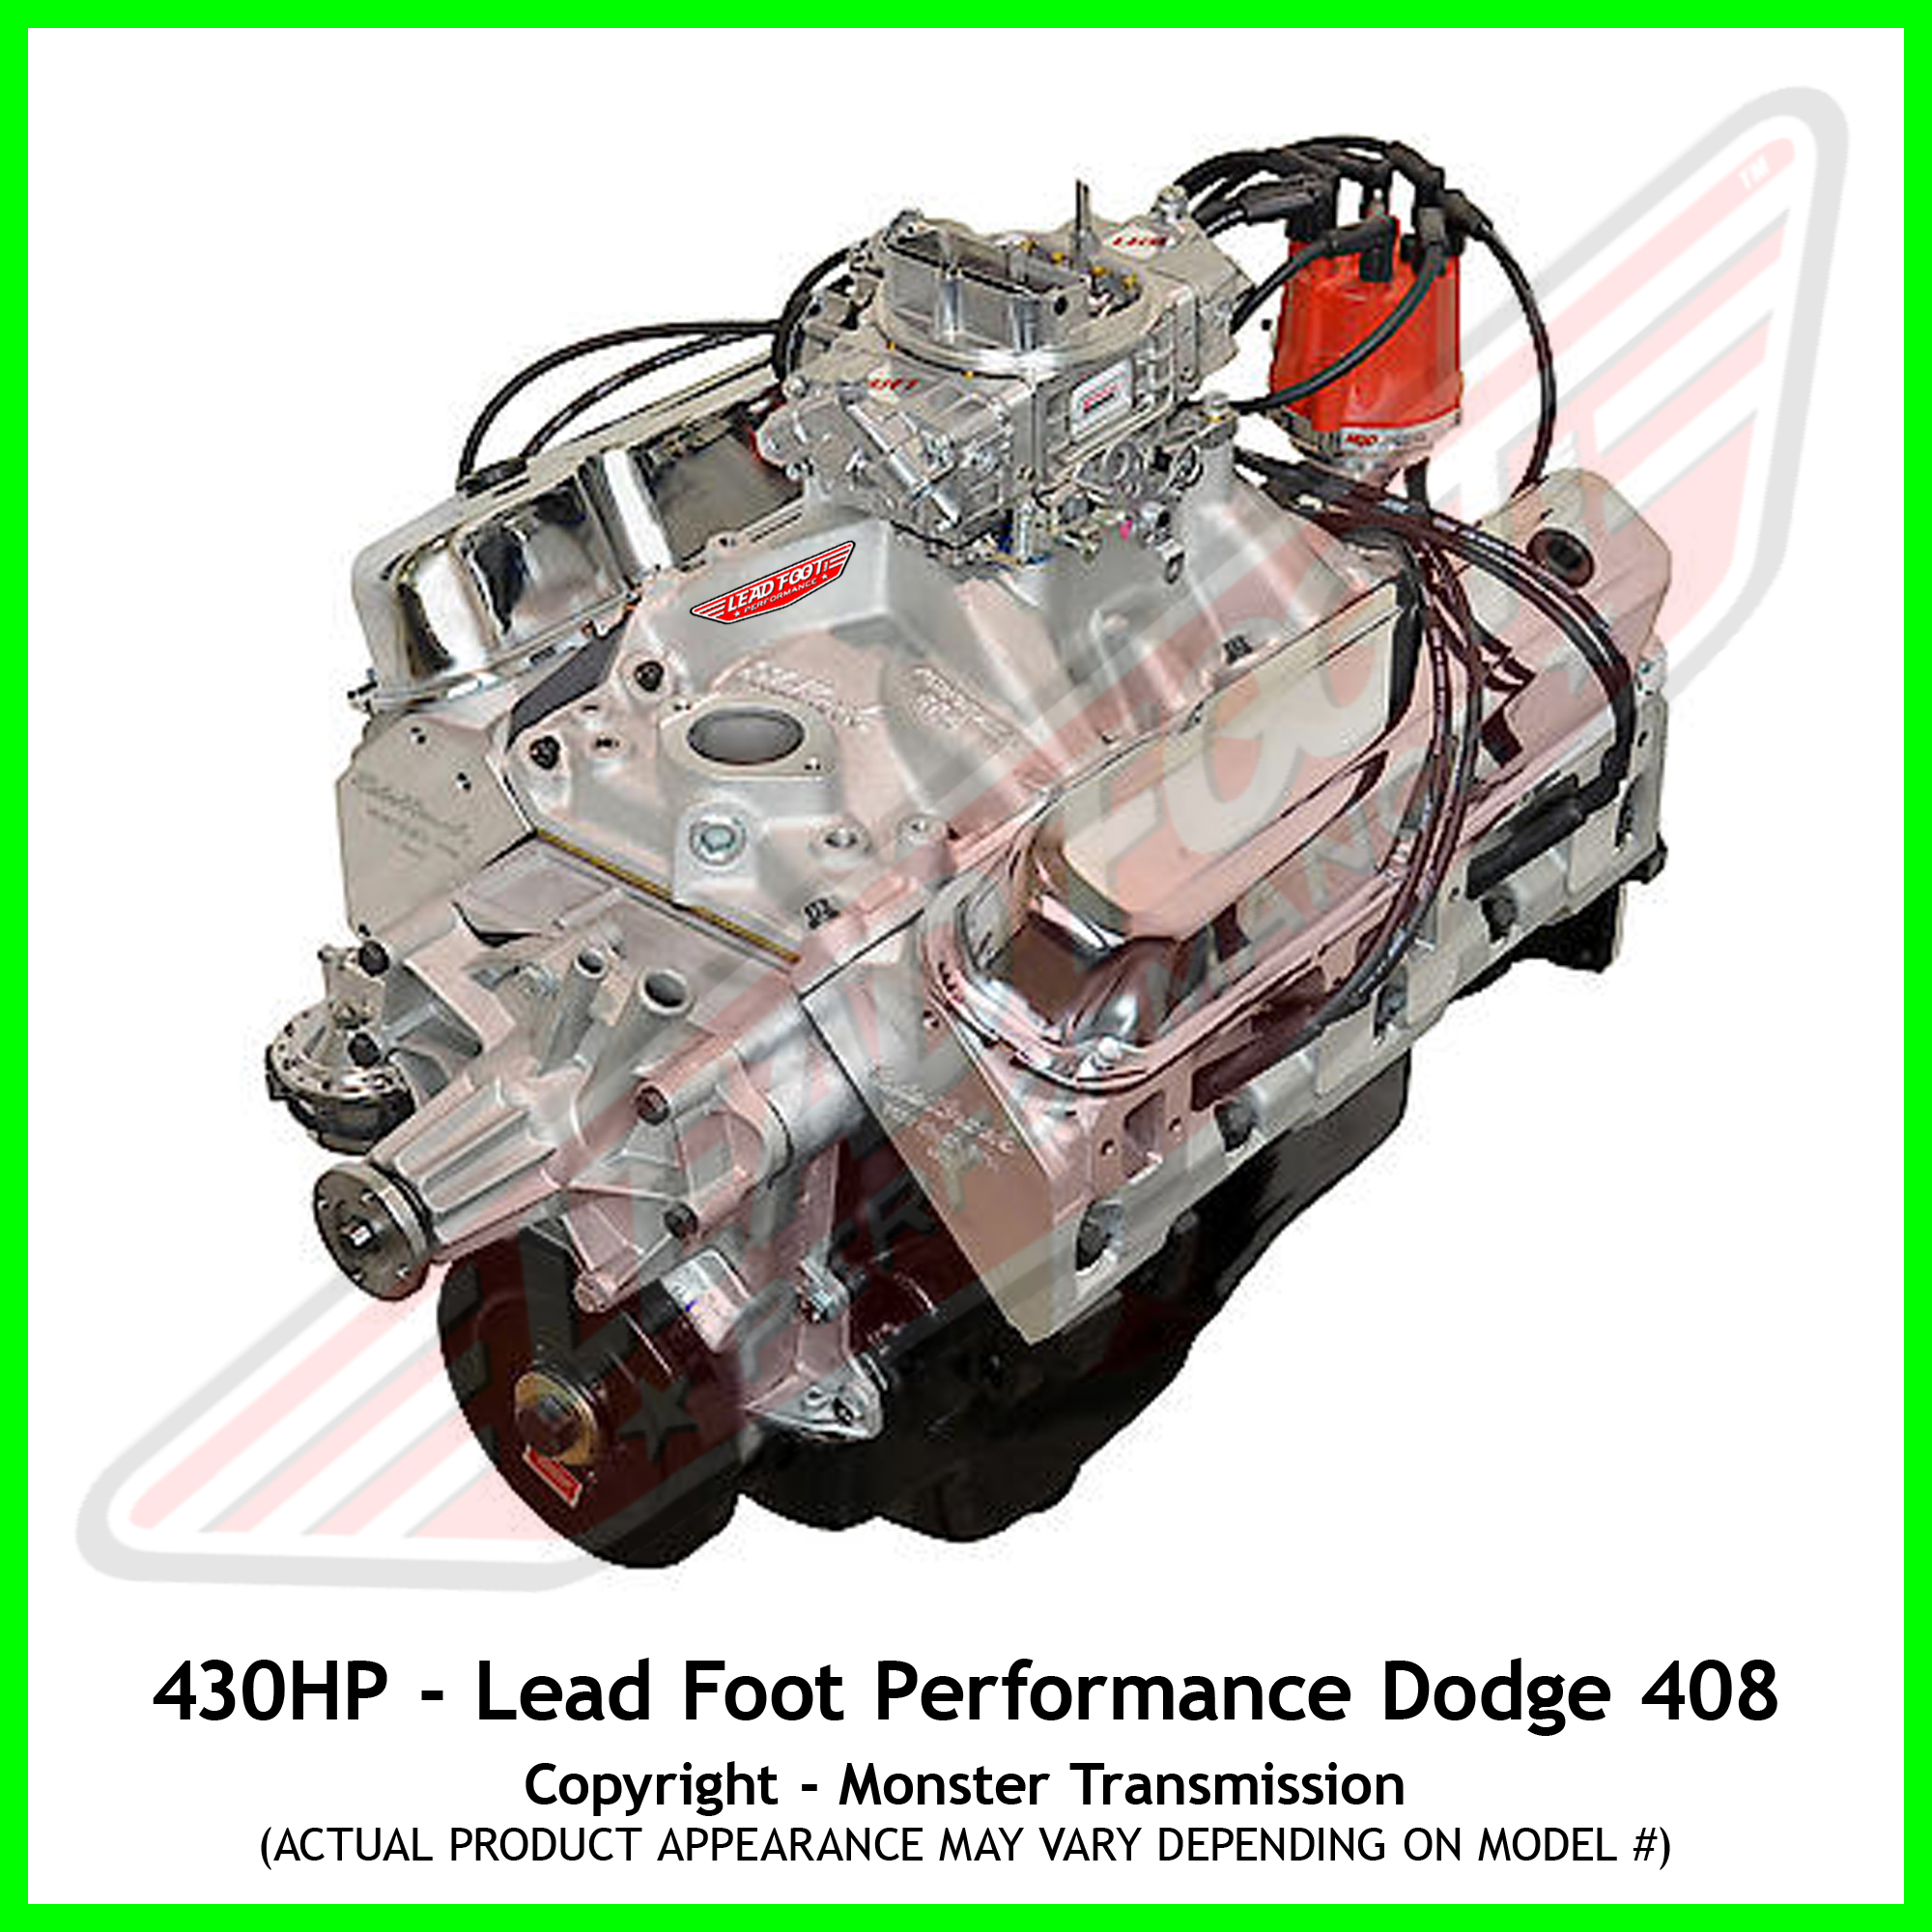 Dodge crate engines news of new car release lead foot performance new modified dodge 408 engine malvernweather Choice Image